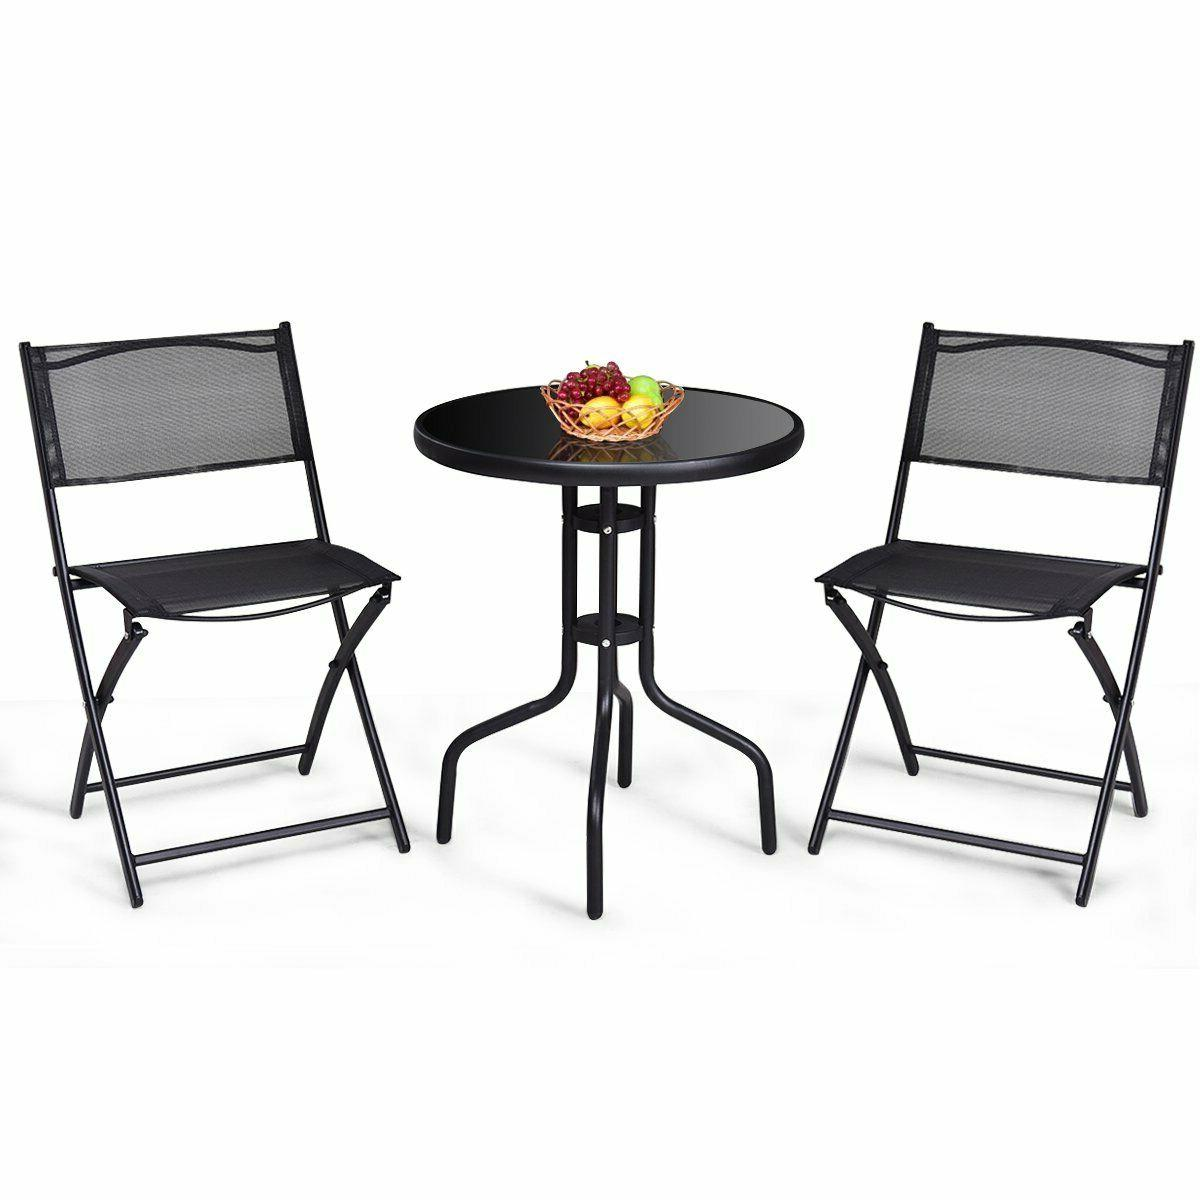 3 Pc. Bistro w/ Round Steel Reinforced Glass Table Chairs